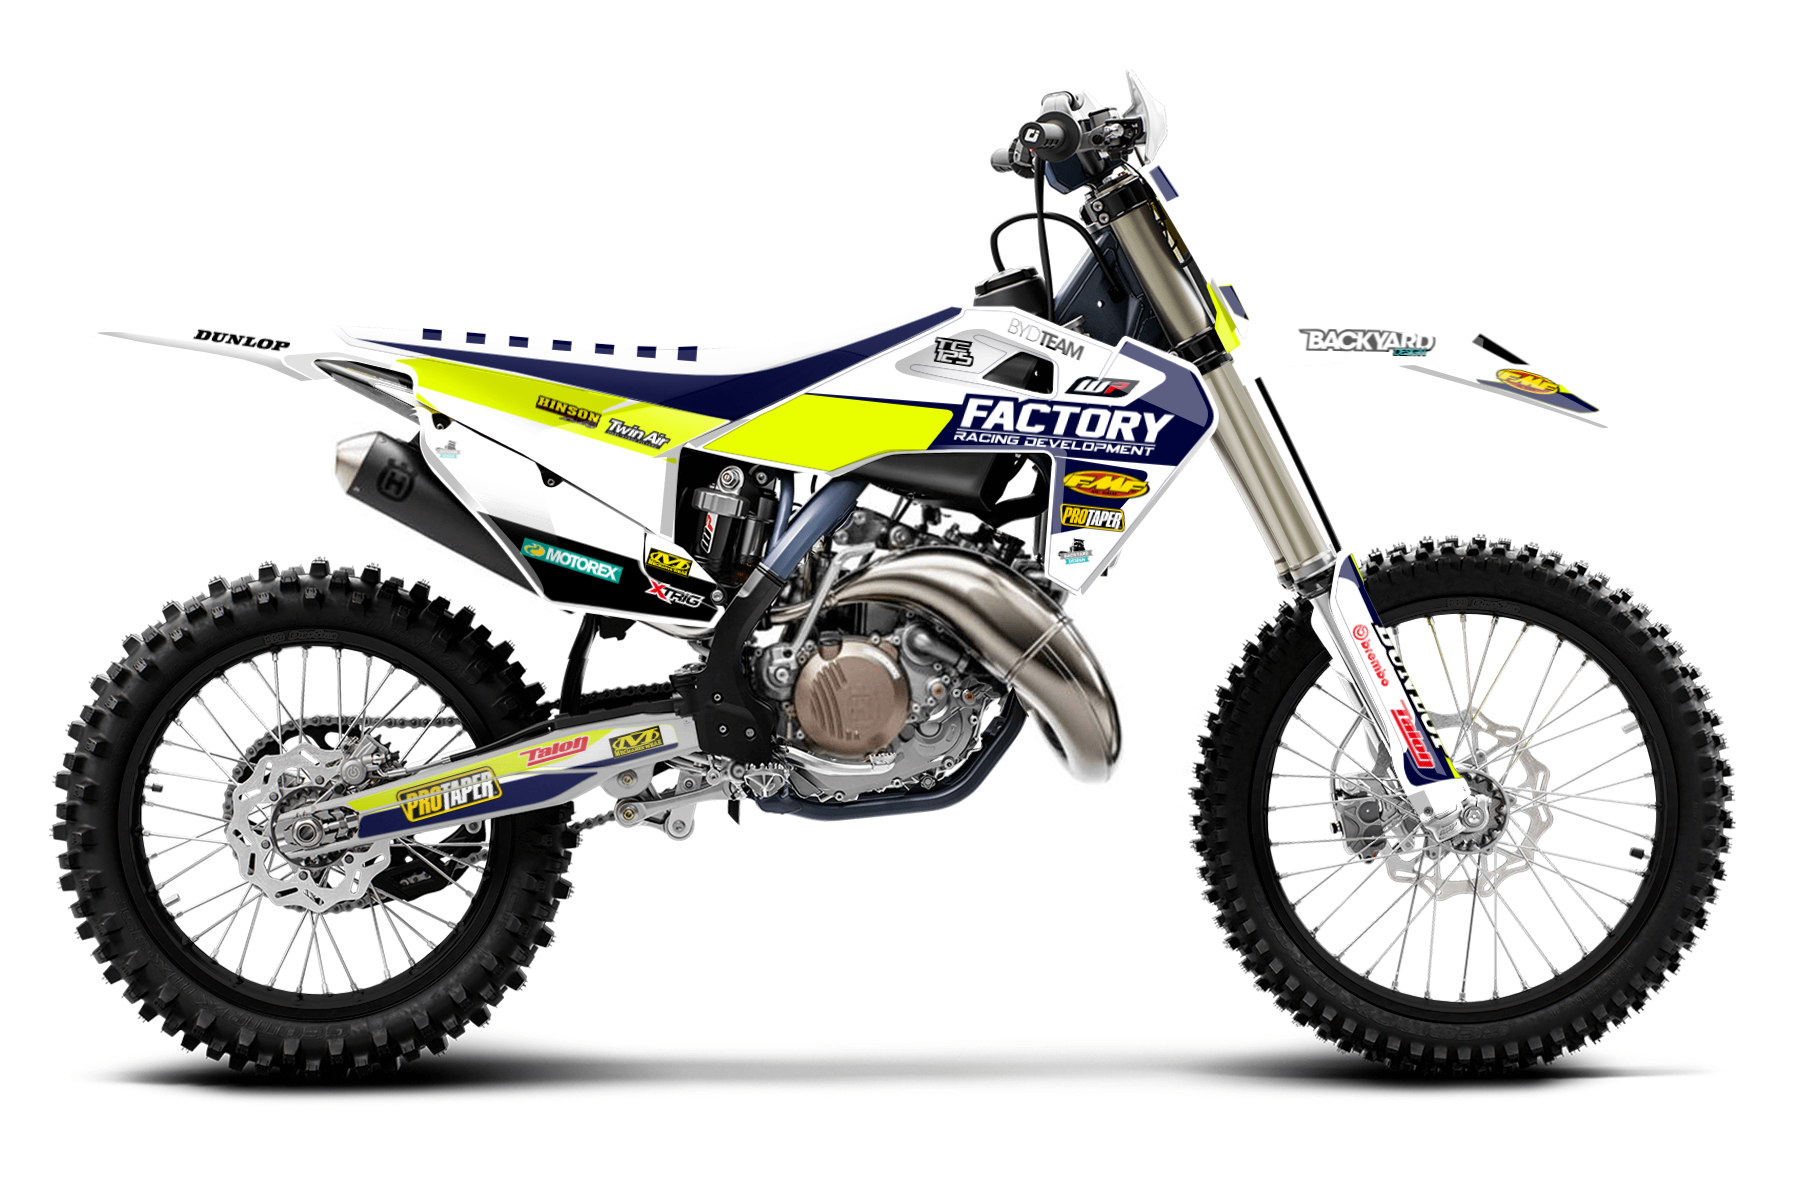 Husqvarna TC125 MX Graphic Kits  This two-stroke provides you with 45 hp of good to handle power and enough speed to challenge the competition. The blue and white design draws a lot of attention too.